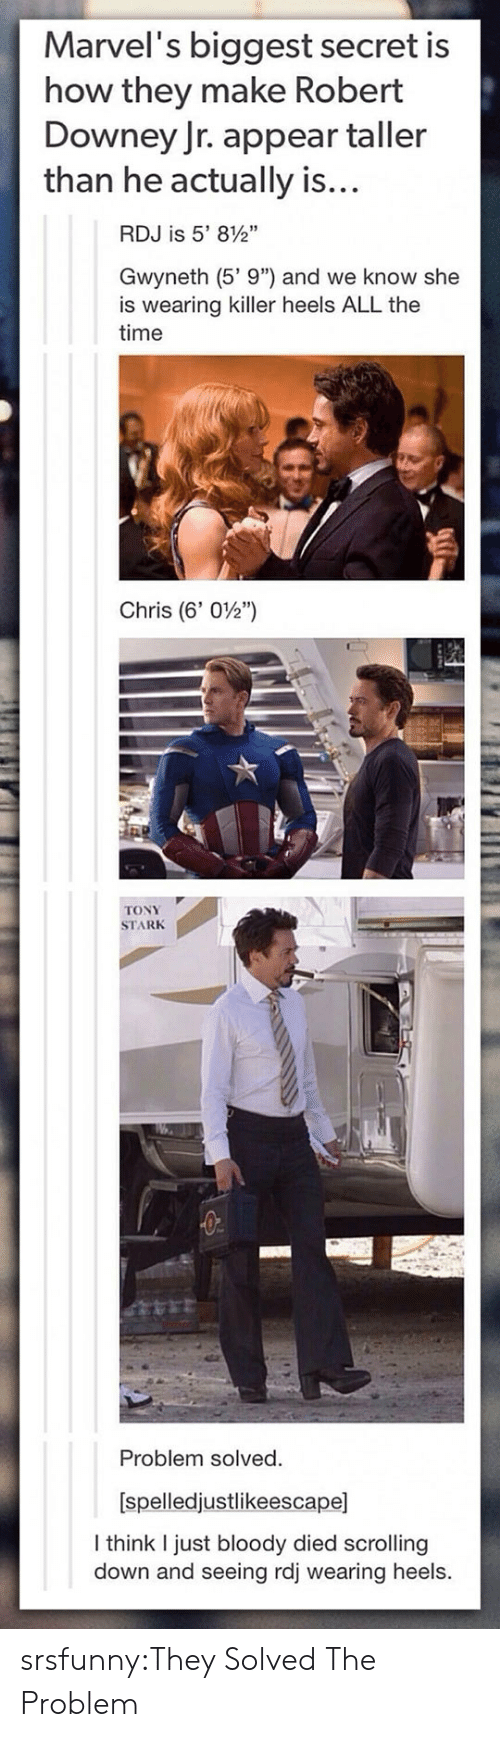 """Robert Downey Jr., Tumblr, and Blog: Marvel's biggest secret is  how they make Robert  Downey Jr. appear taller  than he actually is...  RDJ is 5, 8g,  Gwyneth (5'9"""") and we know she  is wearing killer heels ALL the  time  Chris (6' 02"""")  TONY  STARK  Problem solved  [spelledjustlikeescape]  I think I just bloody died scrolling  down and seeing rdj wearing heels. srsfunny:They Solved The Problem"""